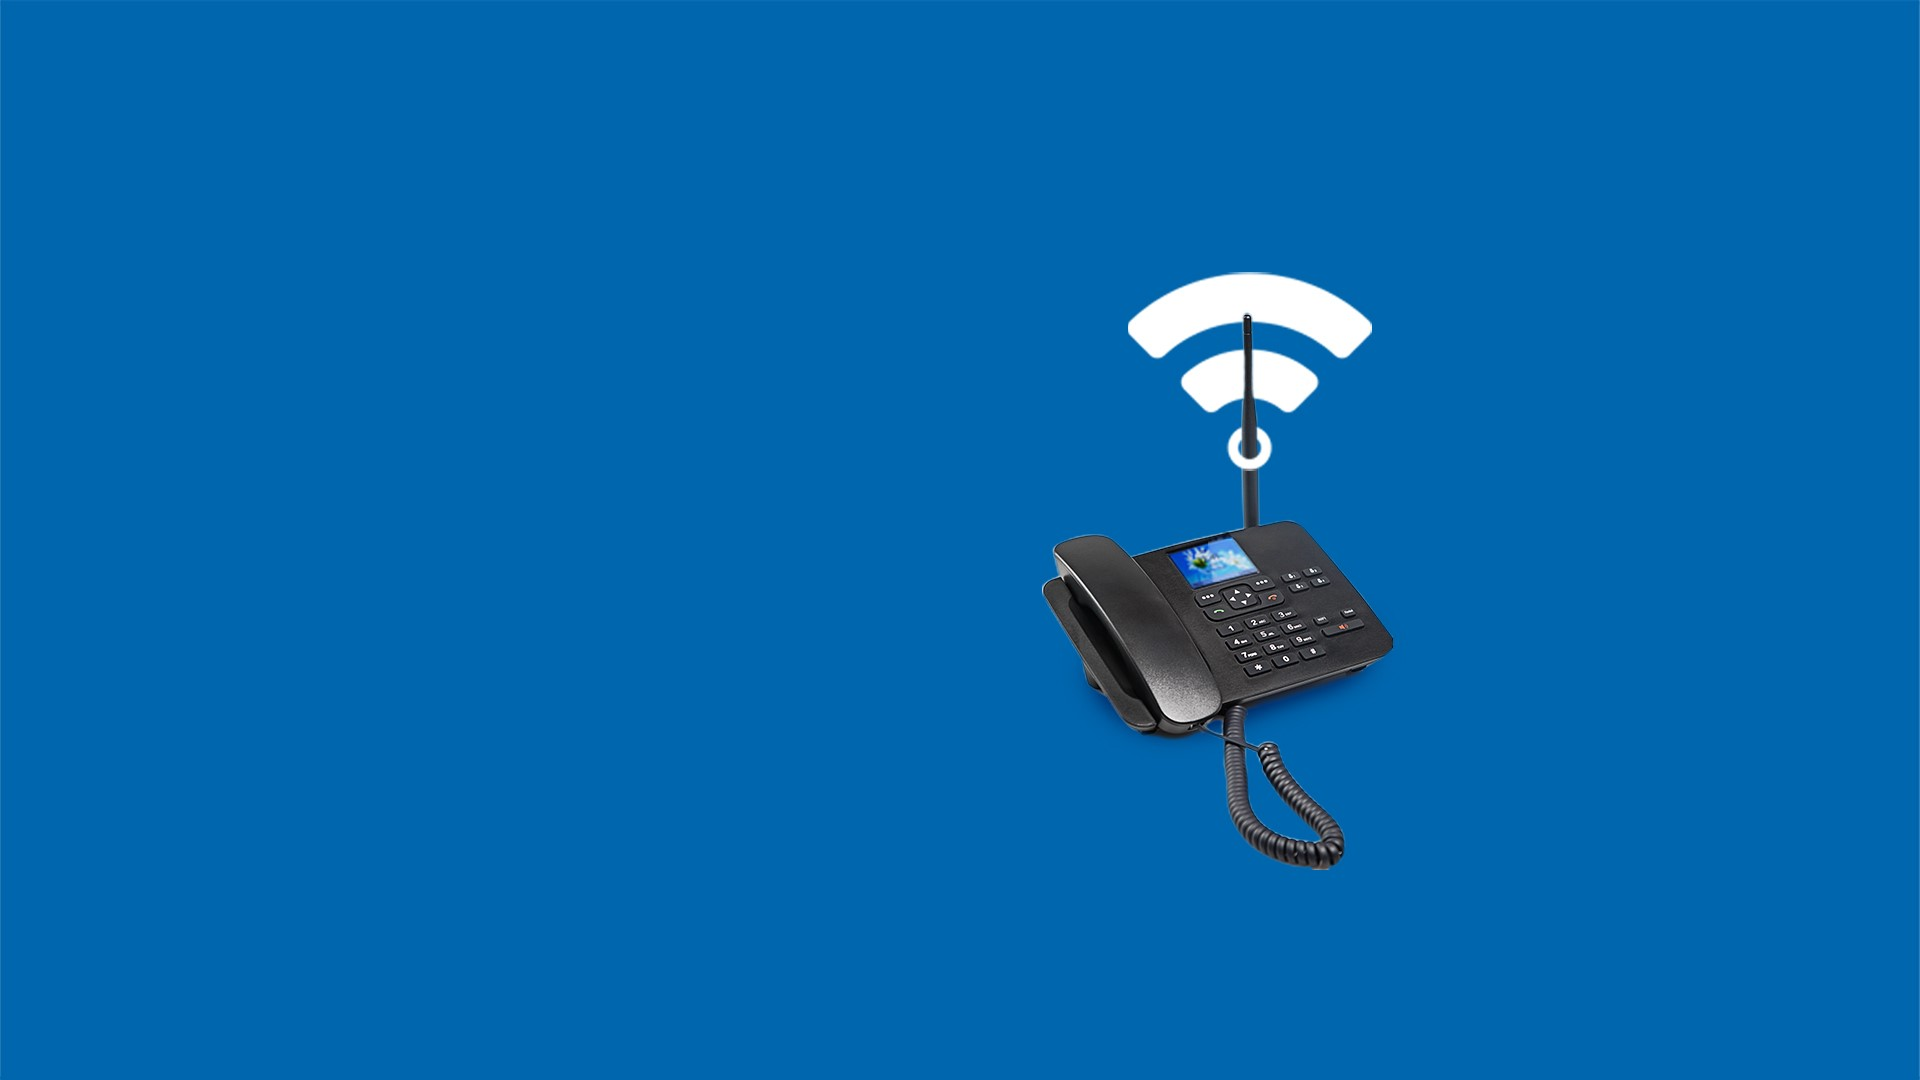 Give your landline a wireless boost with a free upgrade